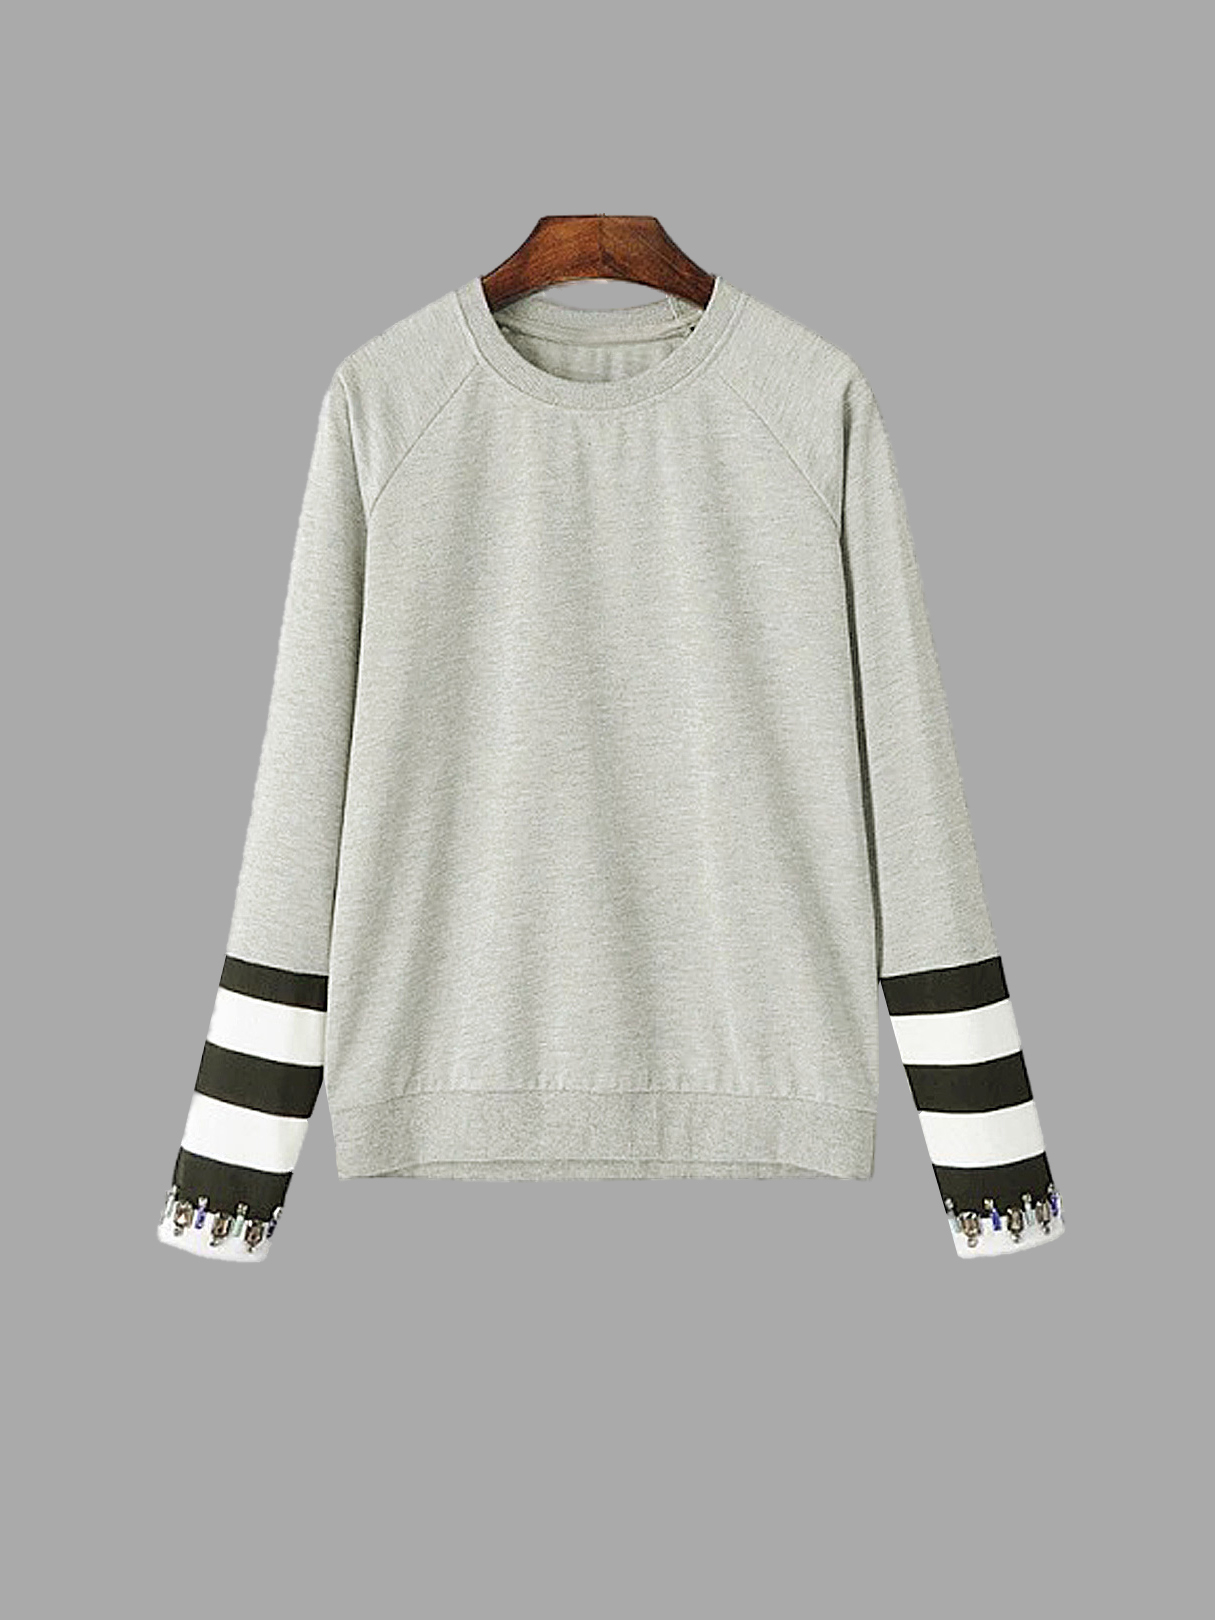 Stripe Sleeve Sweatshirt with Diamante Embellishment